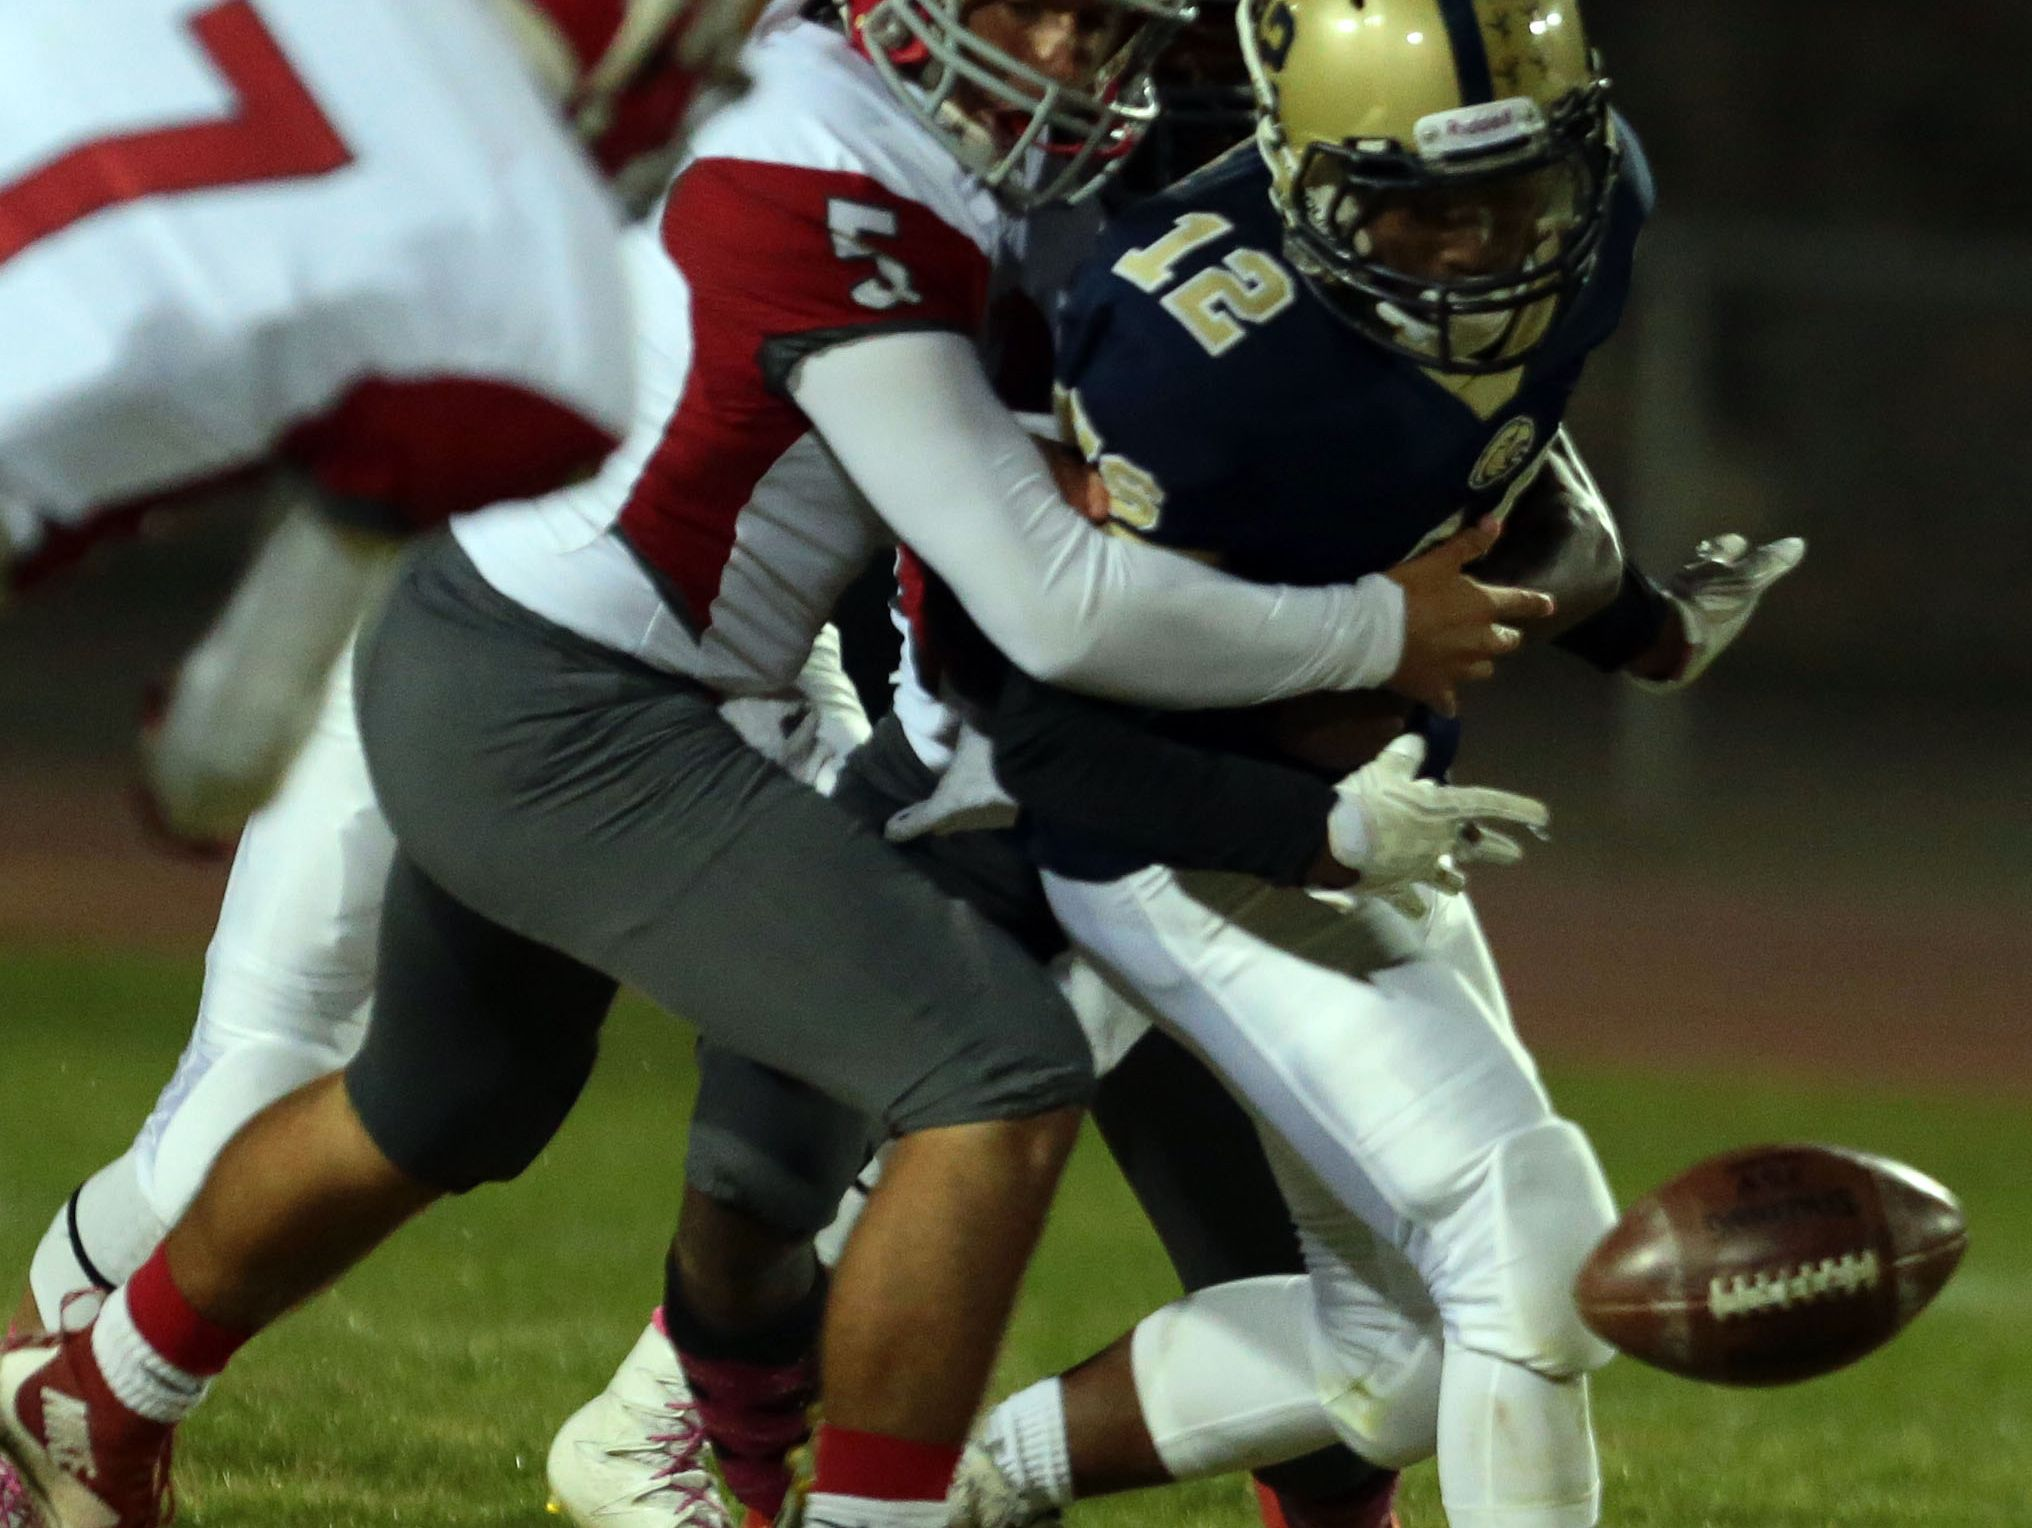 Desert Hot Springs' fumbled ball is recovered by Desert Mirage in the first quarter on Friday, October 14, 2016 in Desert Hot Springs.